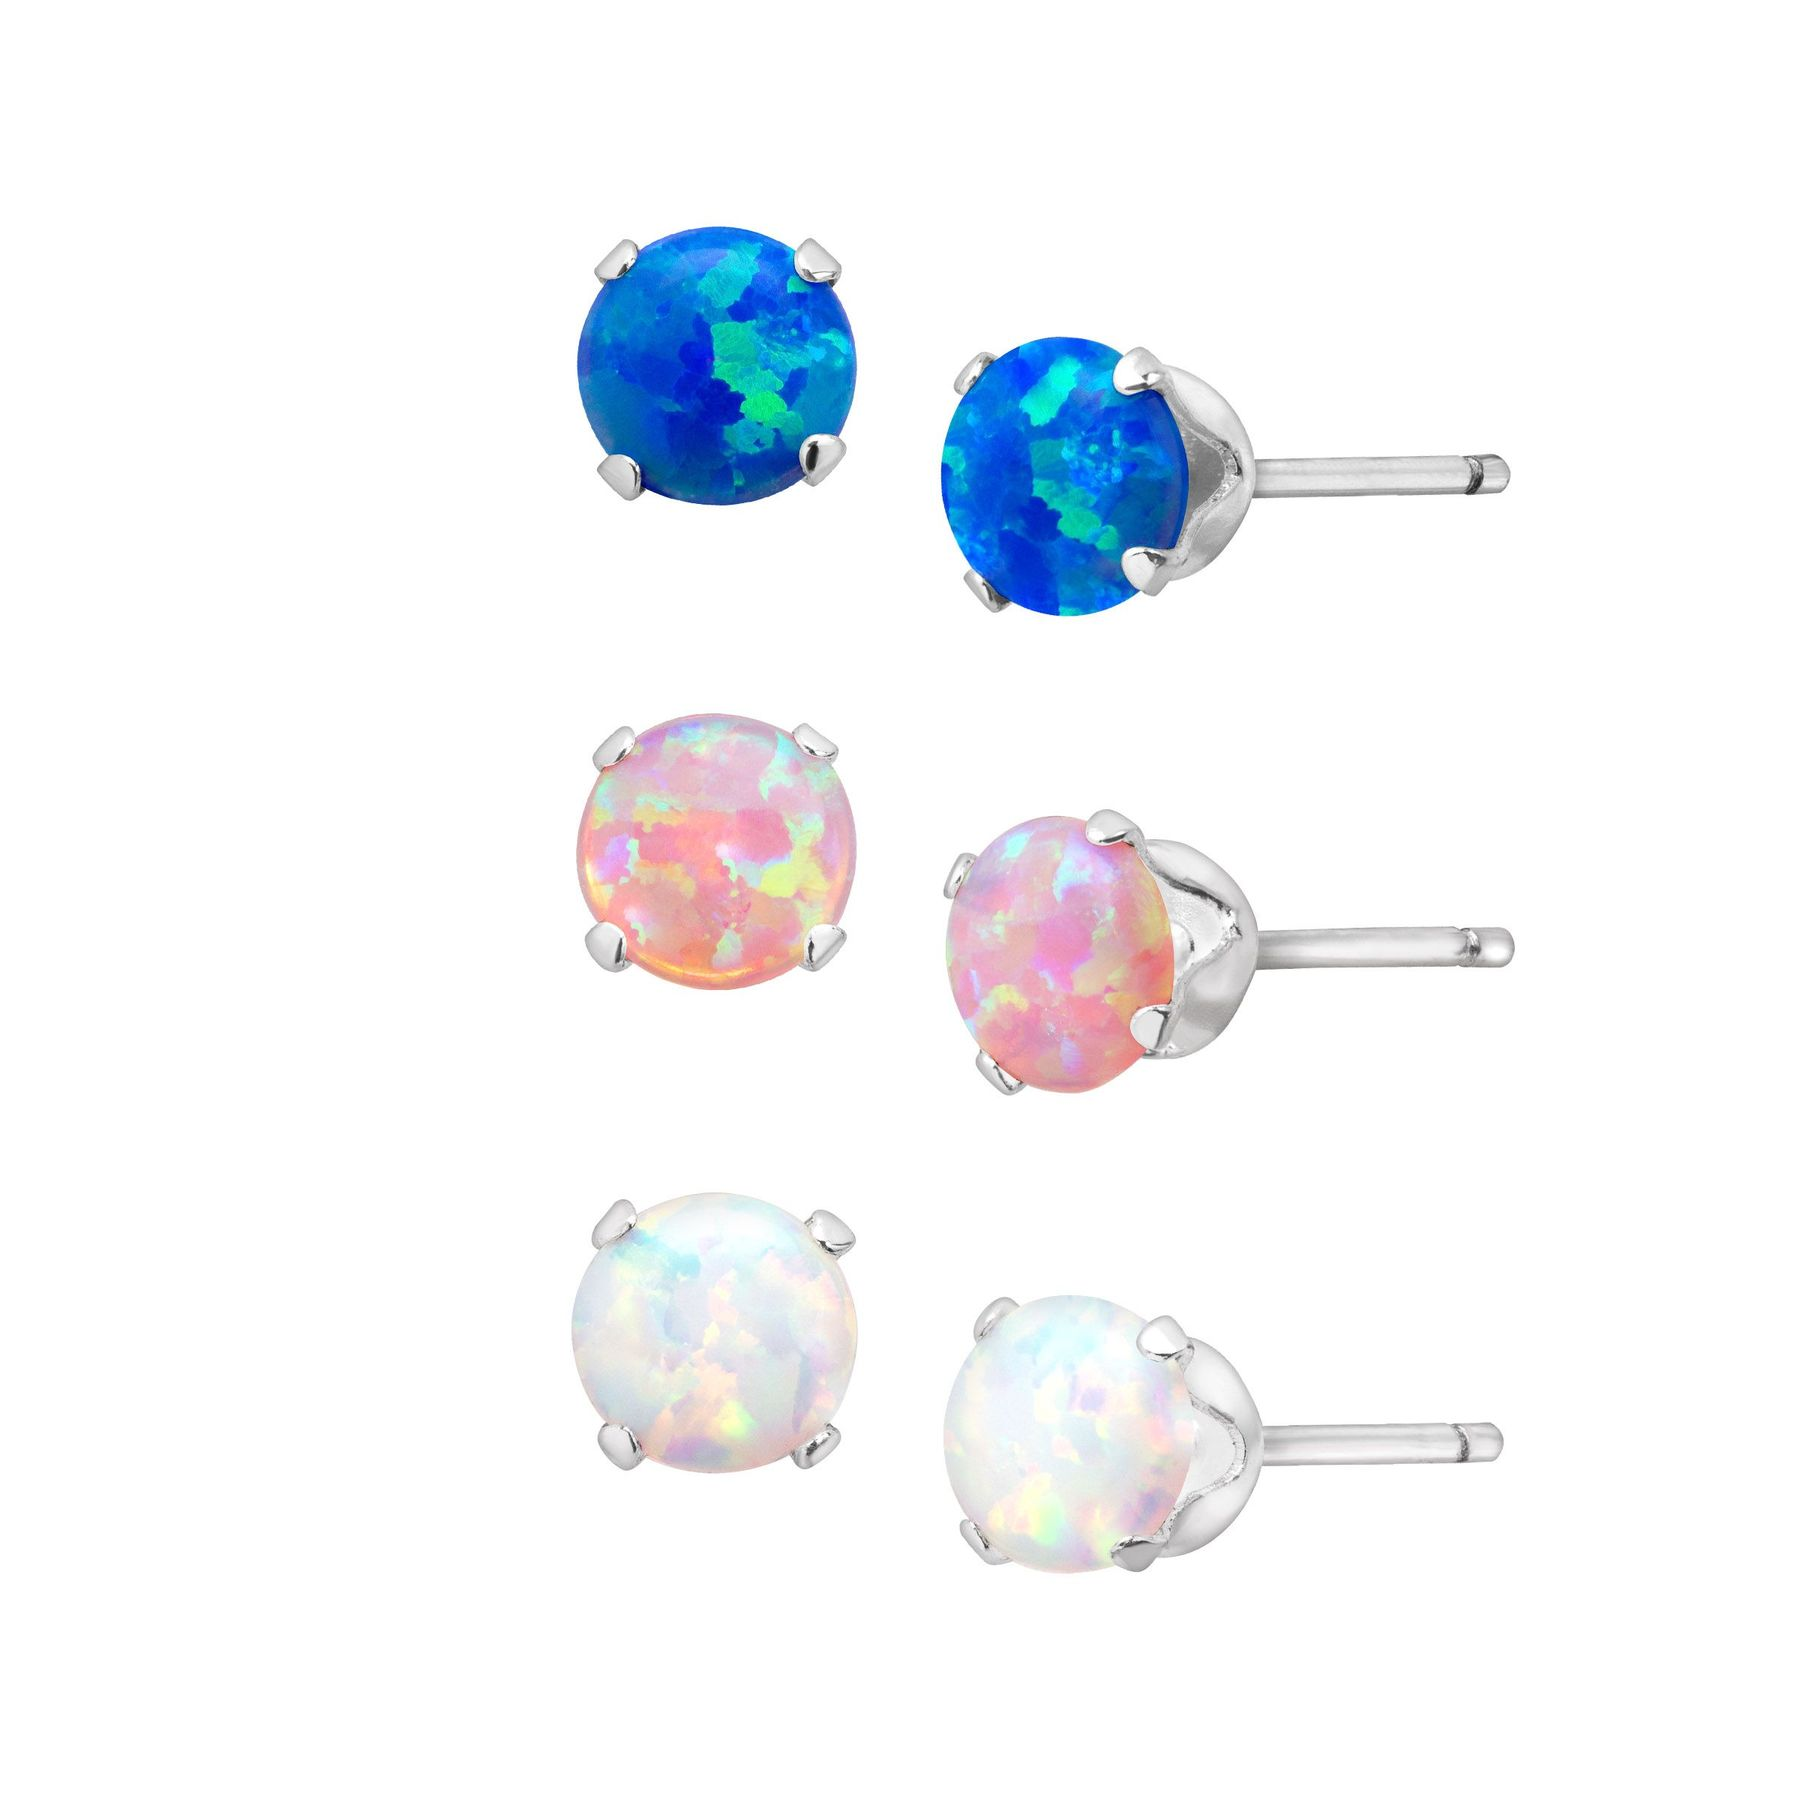 jewelry earrings original product dejonghe diamond opal and